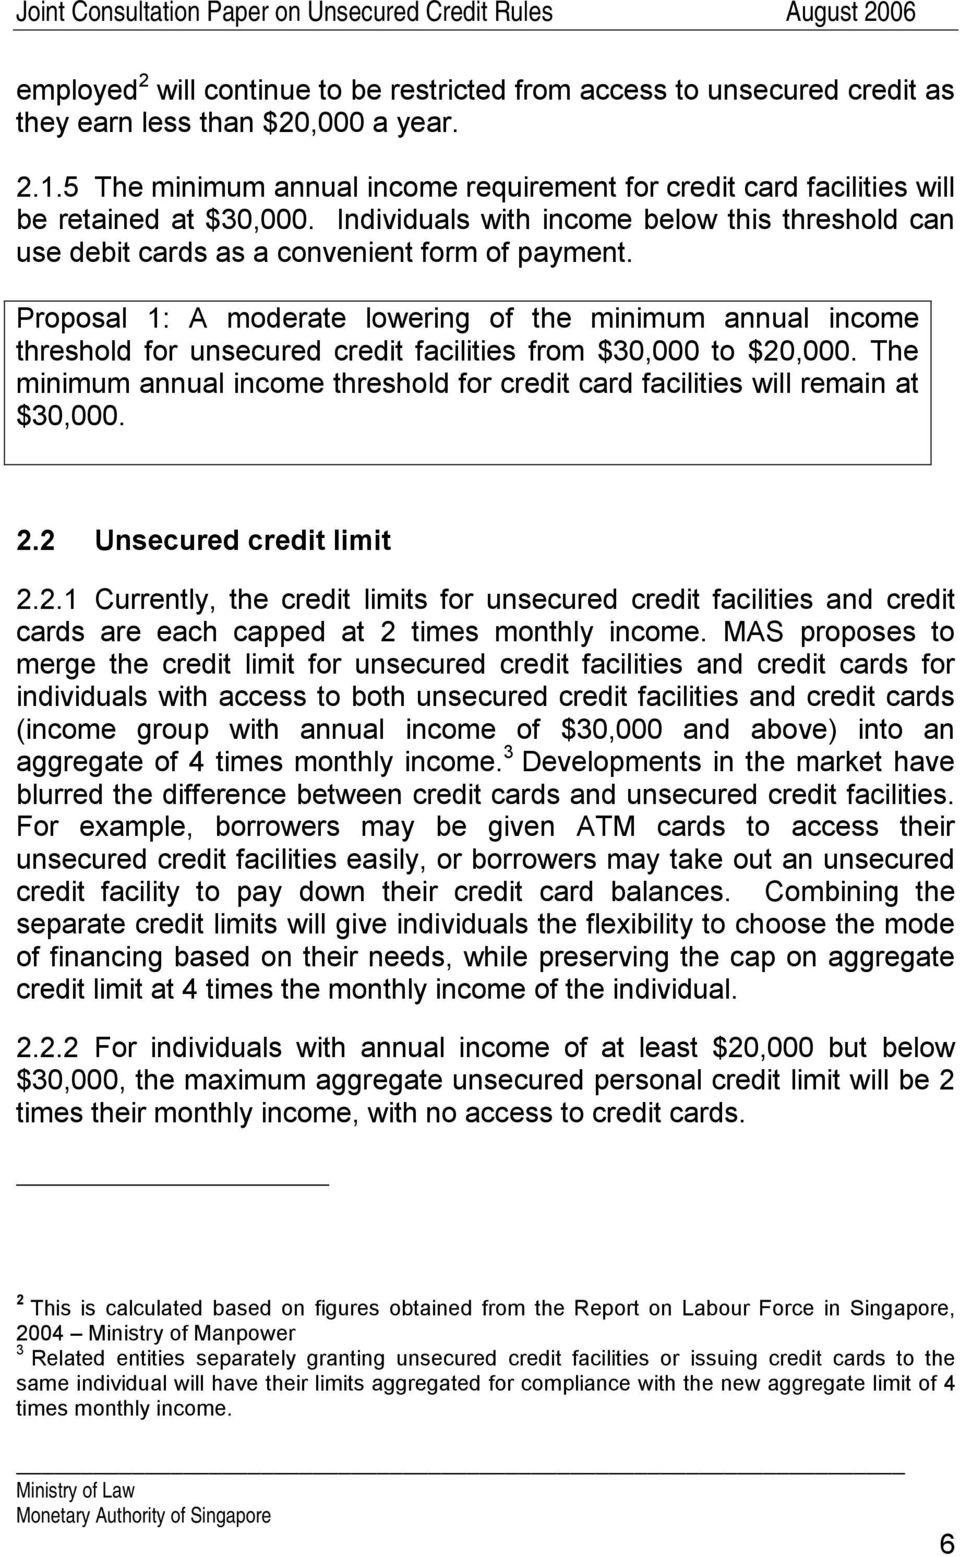 Proposal 1: A moderate lowering of the minimum annual income threshold for unsecured credit facilities from $30,000 to $20,000.